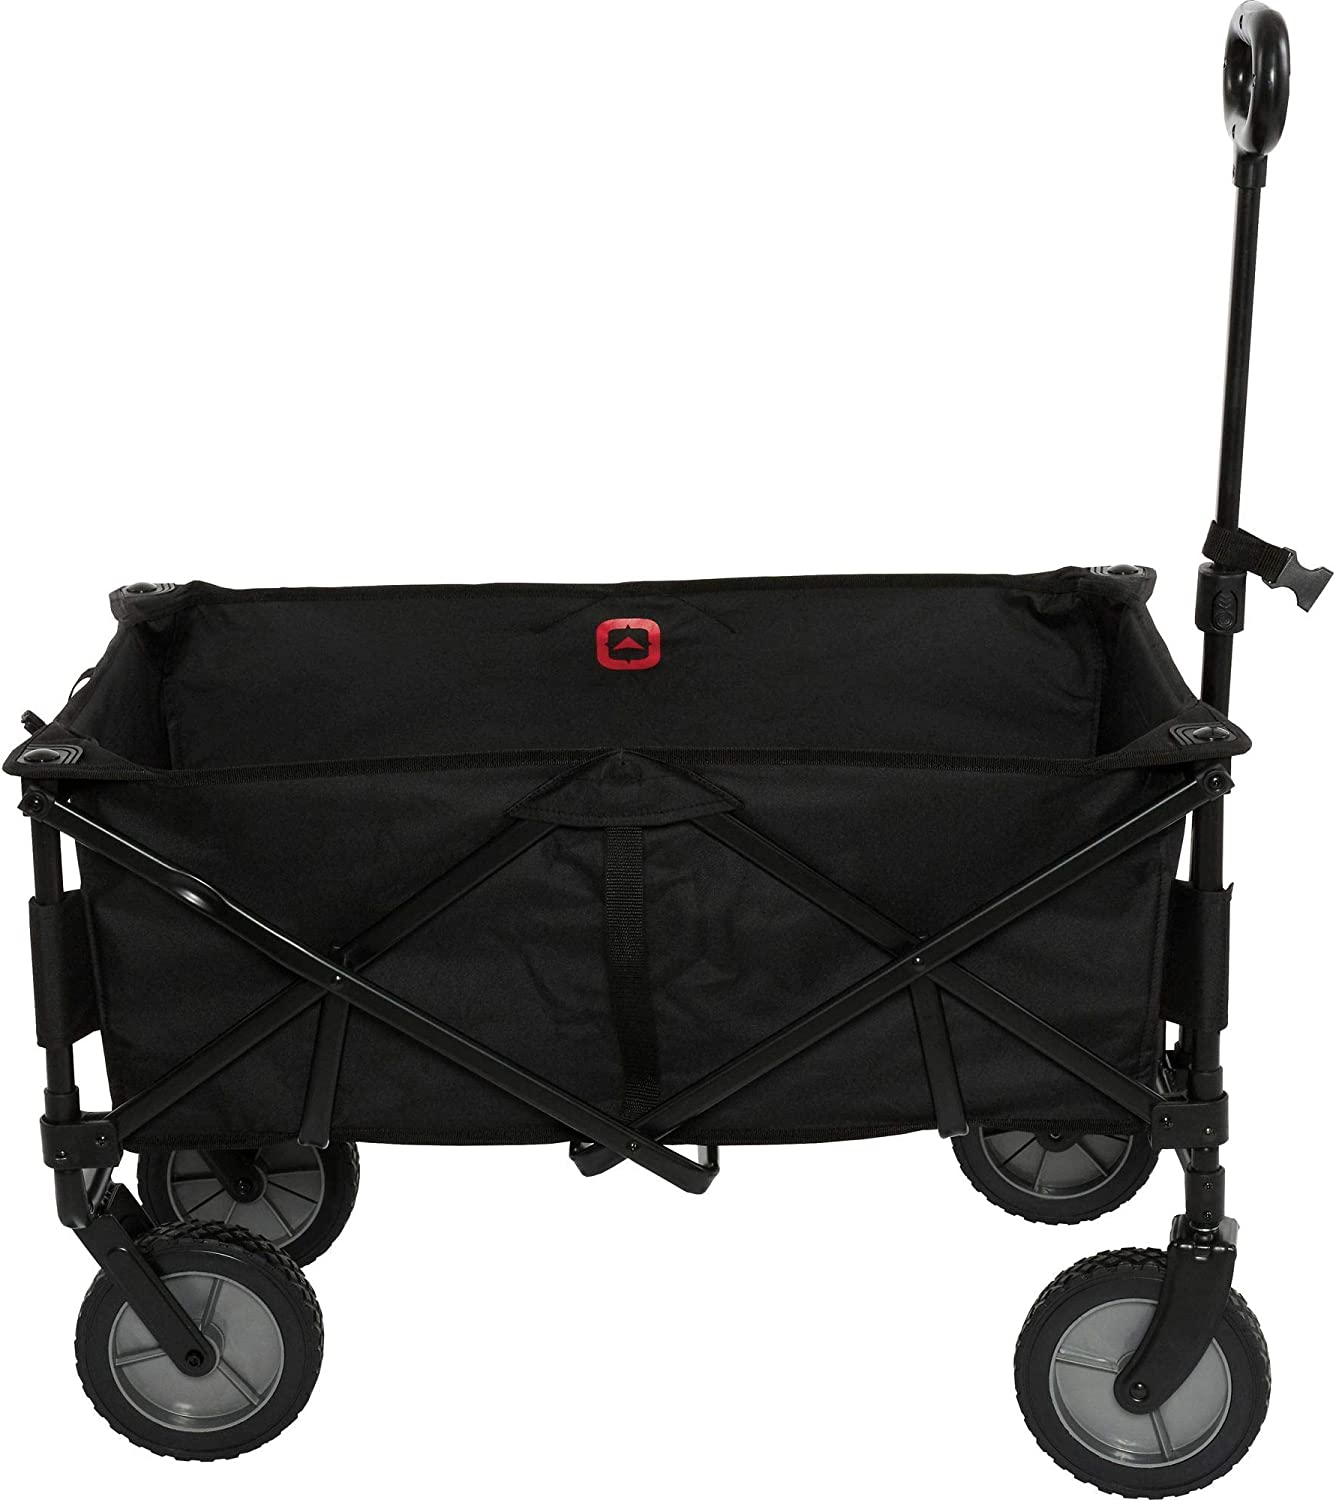 OUTBOUND Folding Wagon   Collapsible Wagon for Beach, Garden, Picnic, Sporting Event, and Park   Compact & Portable Utility Wagon   Black Camping Cart